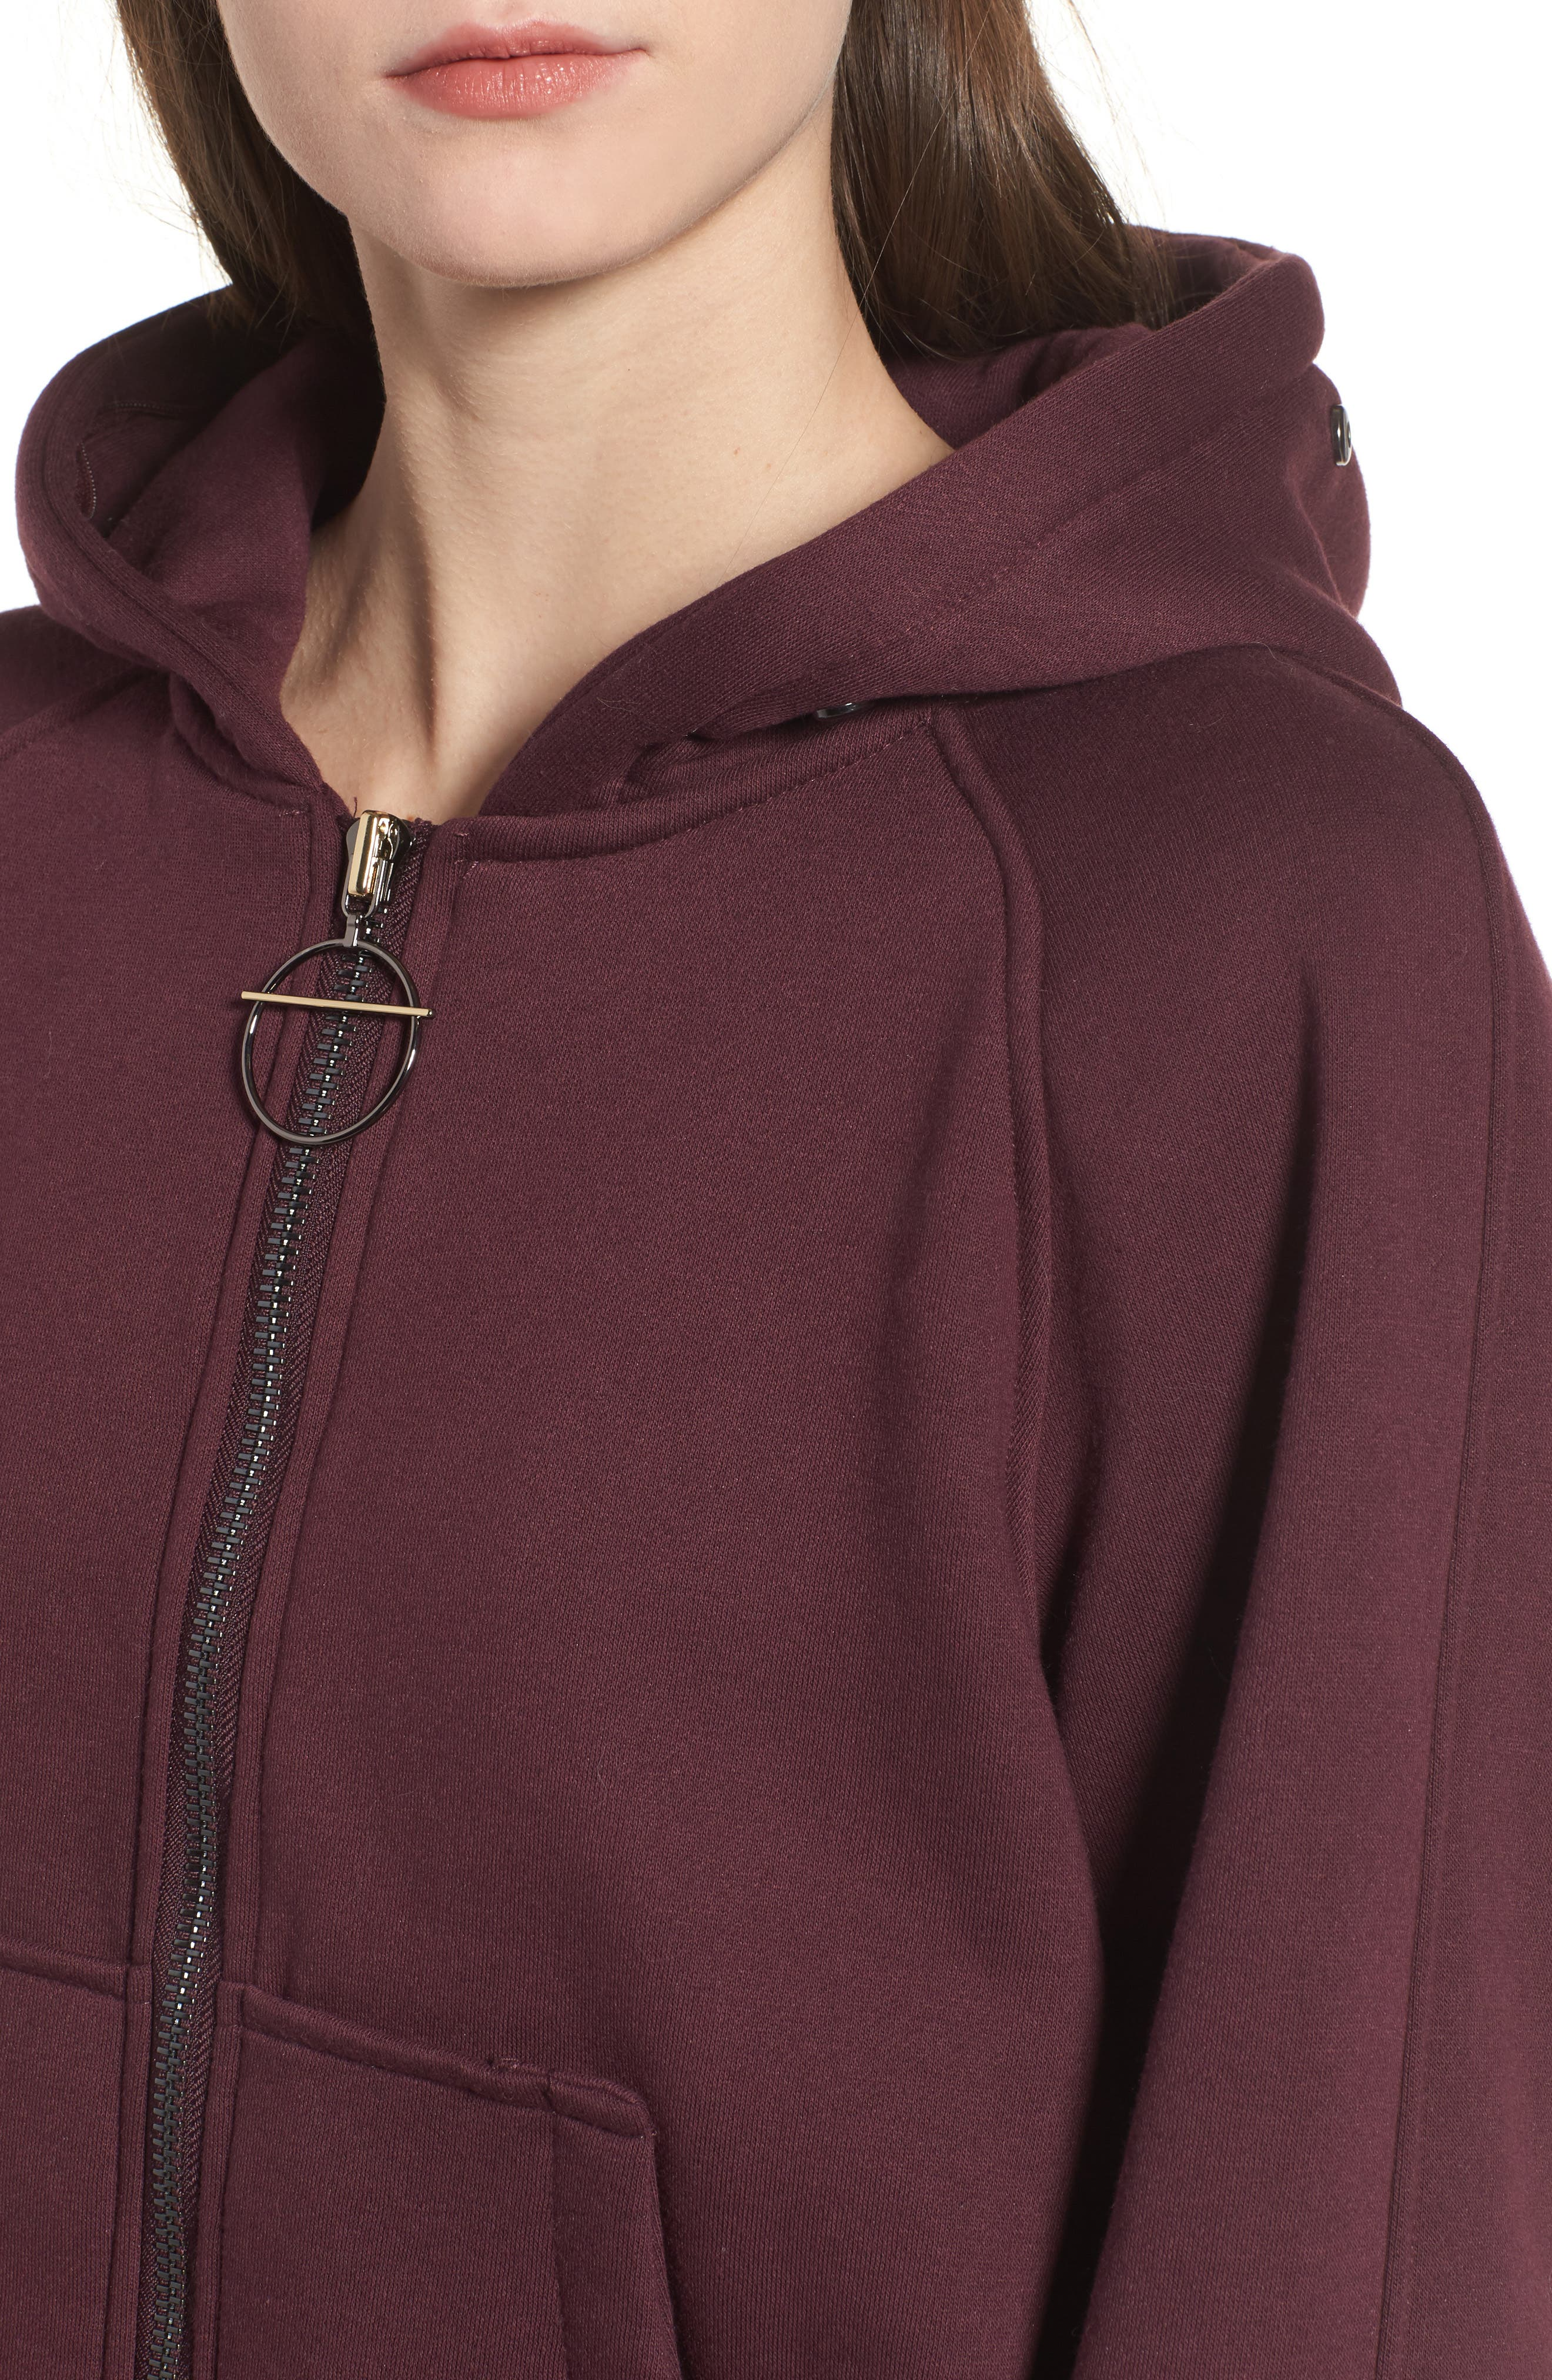 BAGATELLE.CITY The Luxe Hooded Jacket with Genuine Fox Fur Trim,                             Alternate thumbnail 12, color,